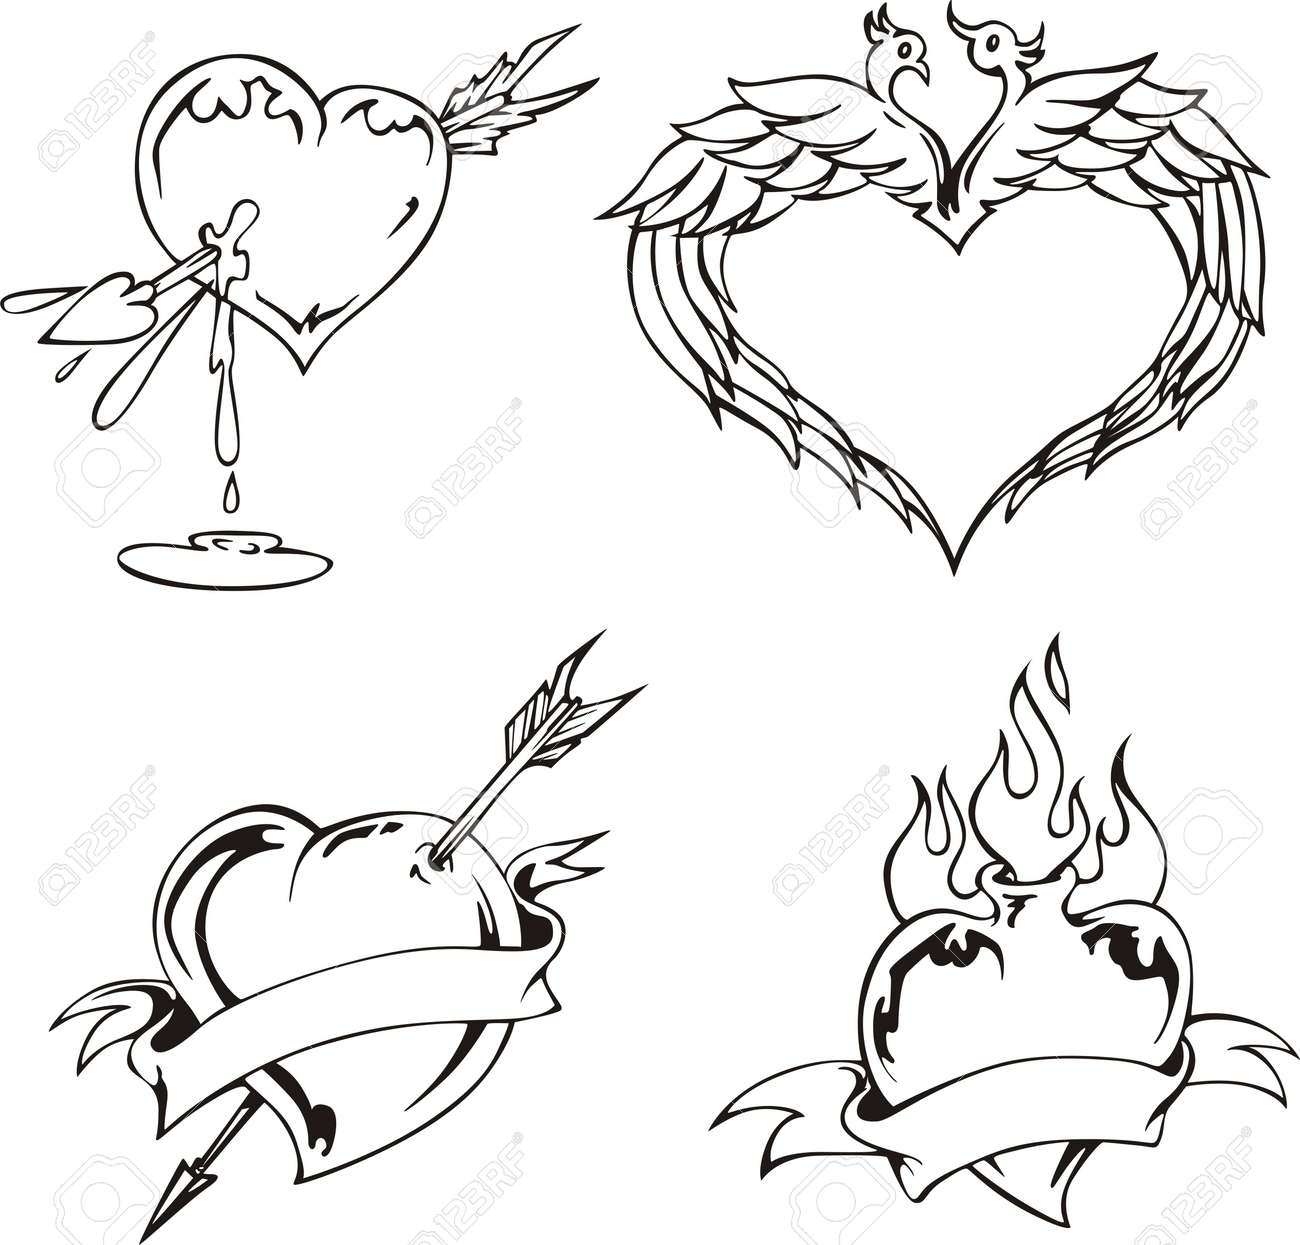 Love designs with hearts. Set of black and white illustrations. Stock Vector - 14744388